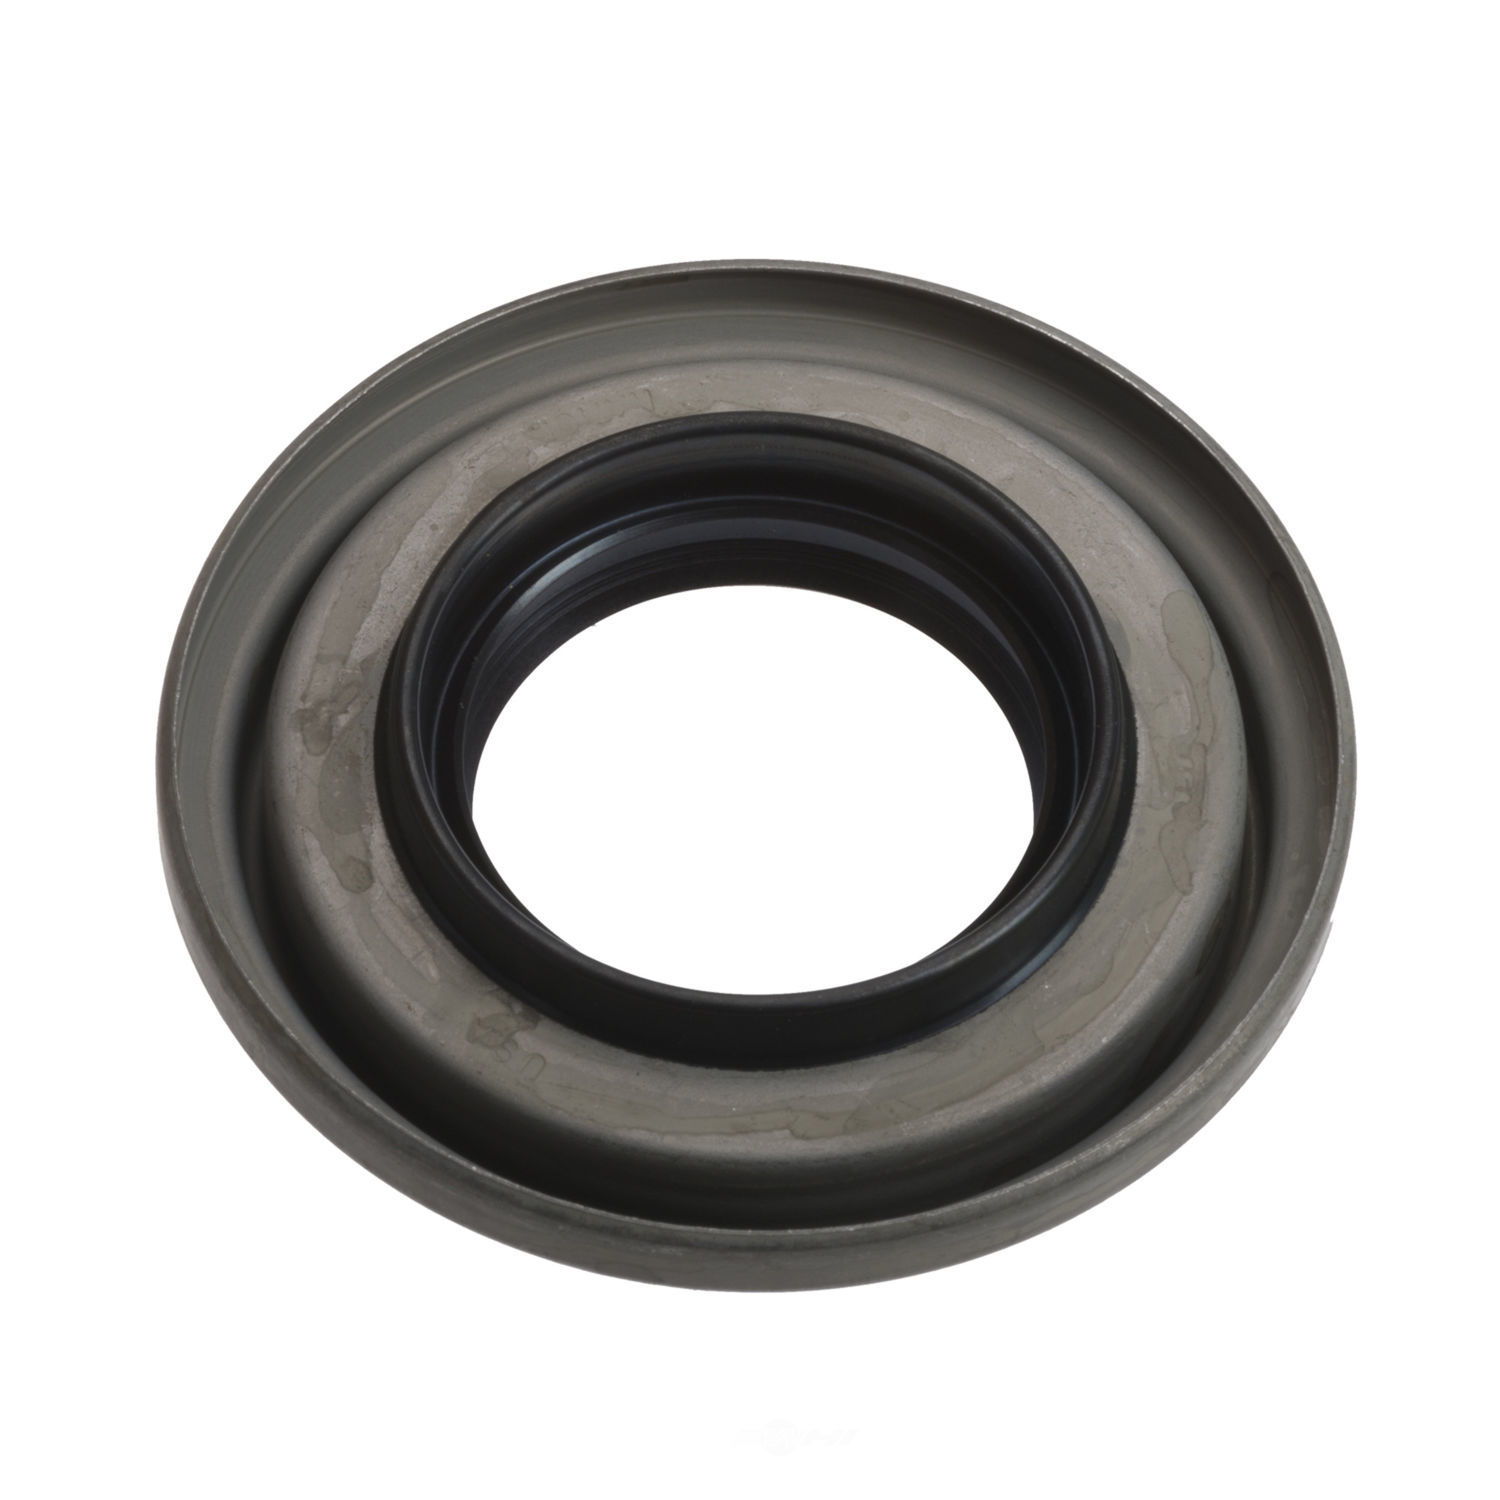 AUTO EXTRA/BEARING-SEALS-HUB ASSEMBLIES - Differential Pinion Seal (Front Outer) - AXJ 5778